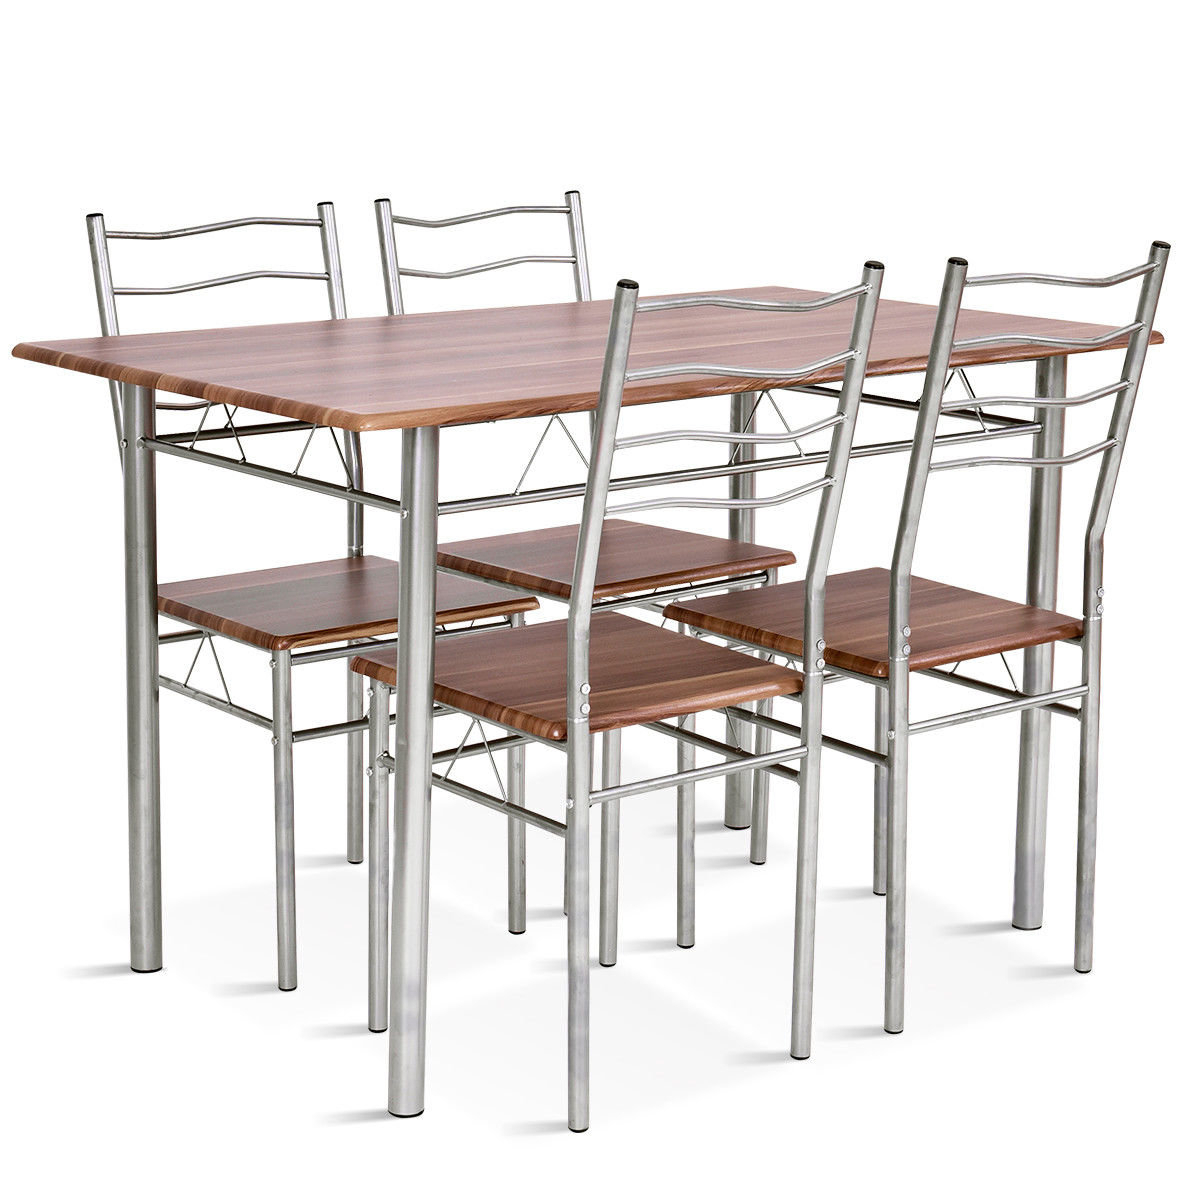 Wayfair With Fashionable Middleport 5 Piece Dining Sets (View 10 of 25)